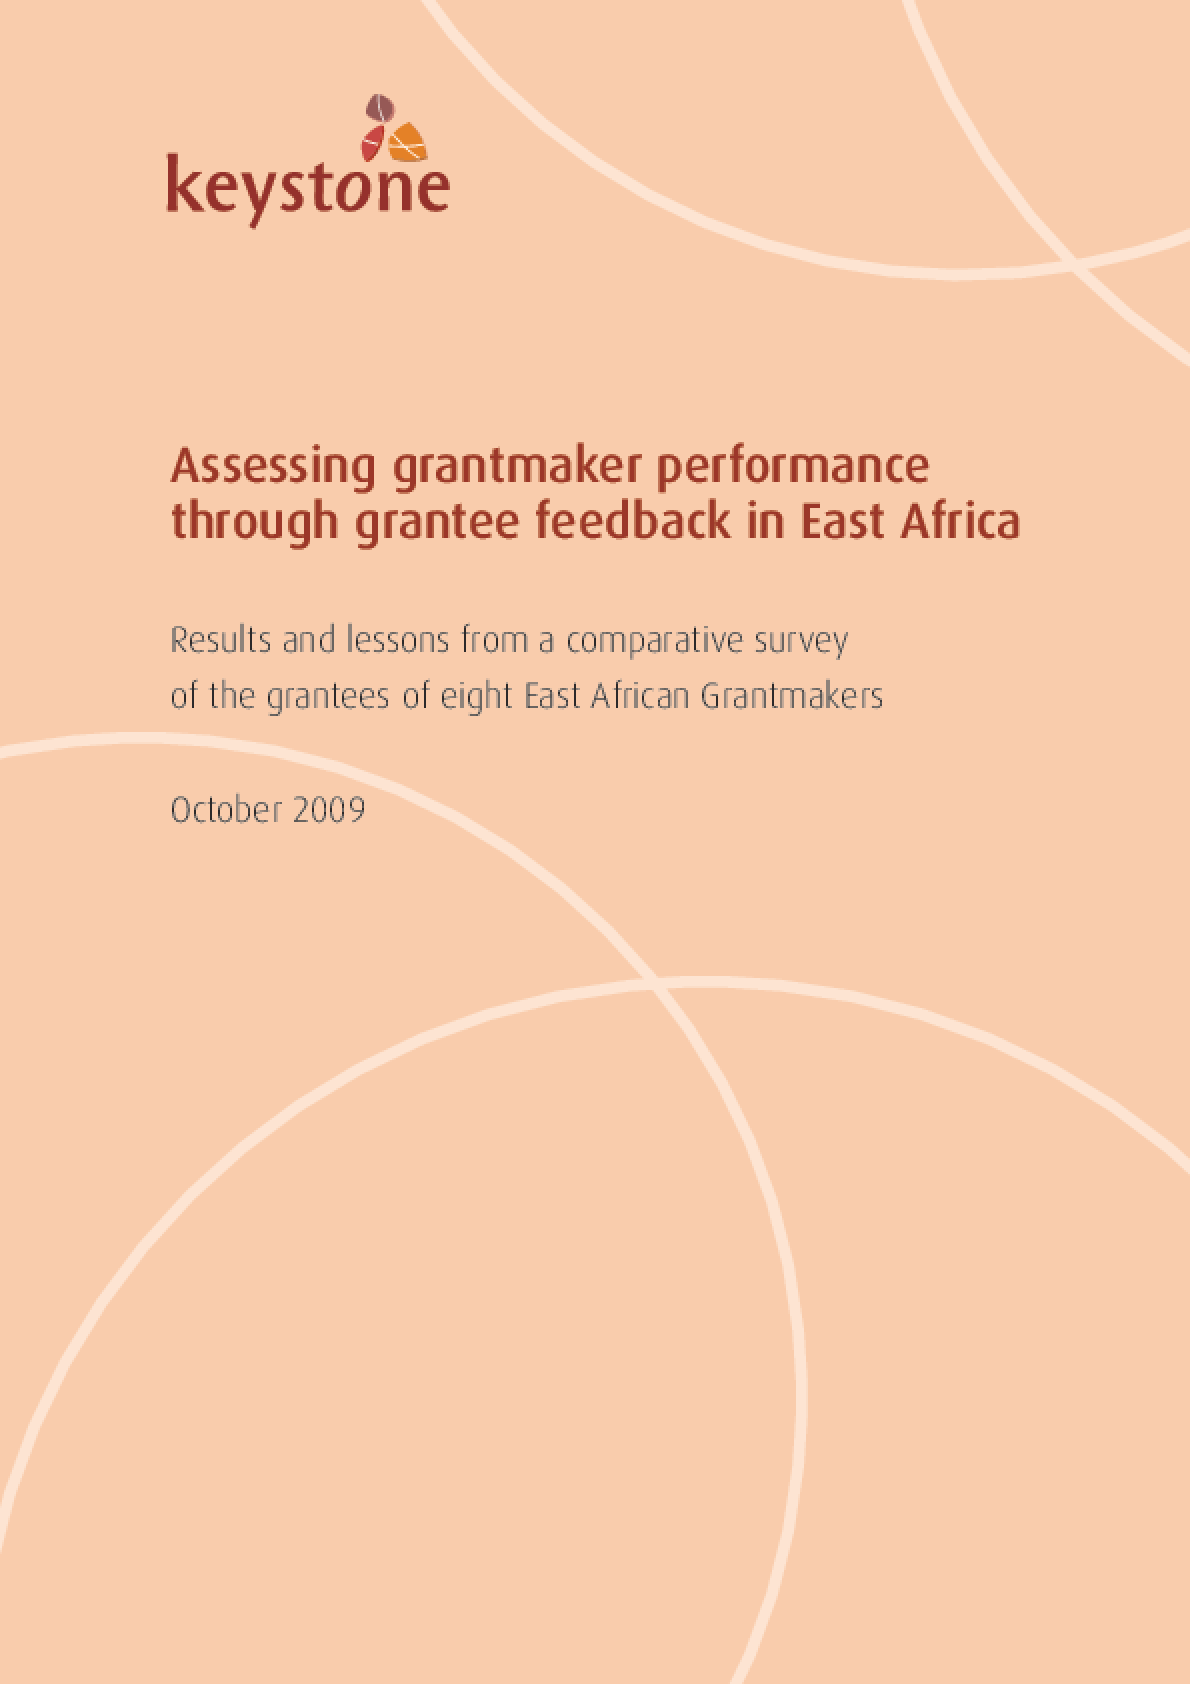 Assessing Grantmaker Performance Through Grantee Feedback in East Africa